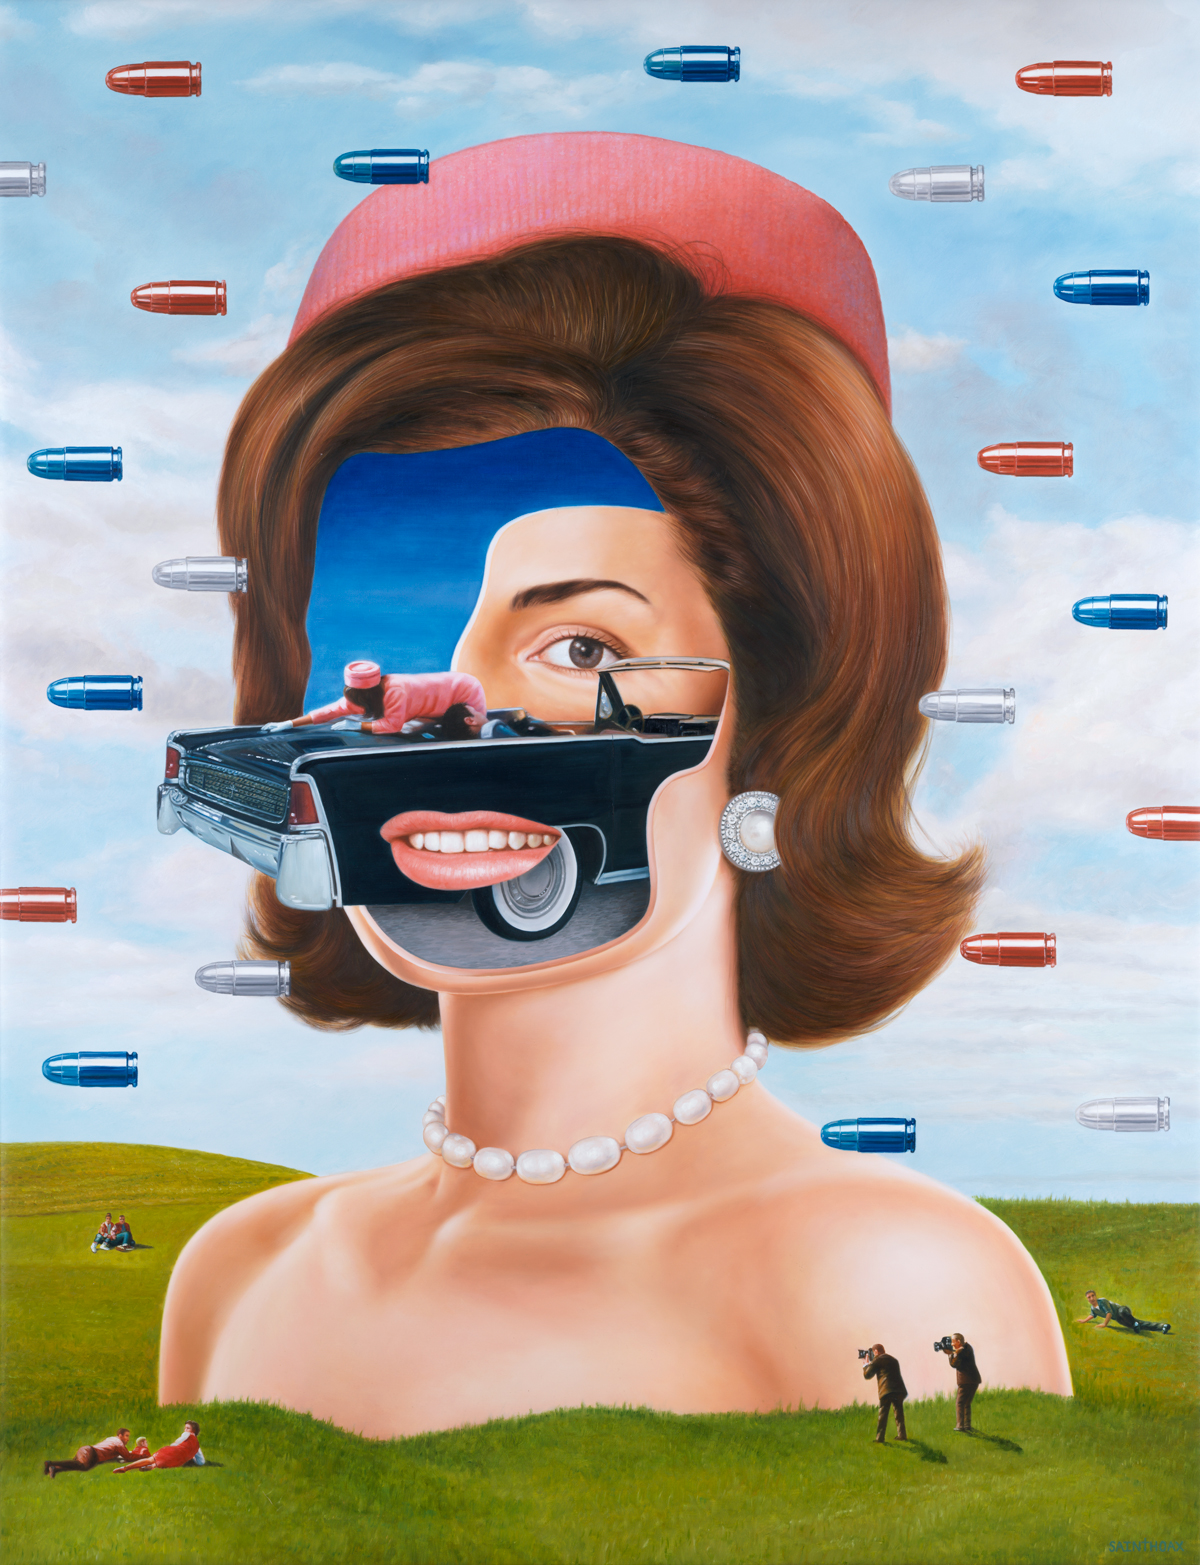 The Kennedy Dream - 2018Oil on canvas115 x 150 cm ( 45.2 x 59 in)$39,000